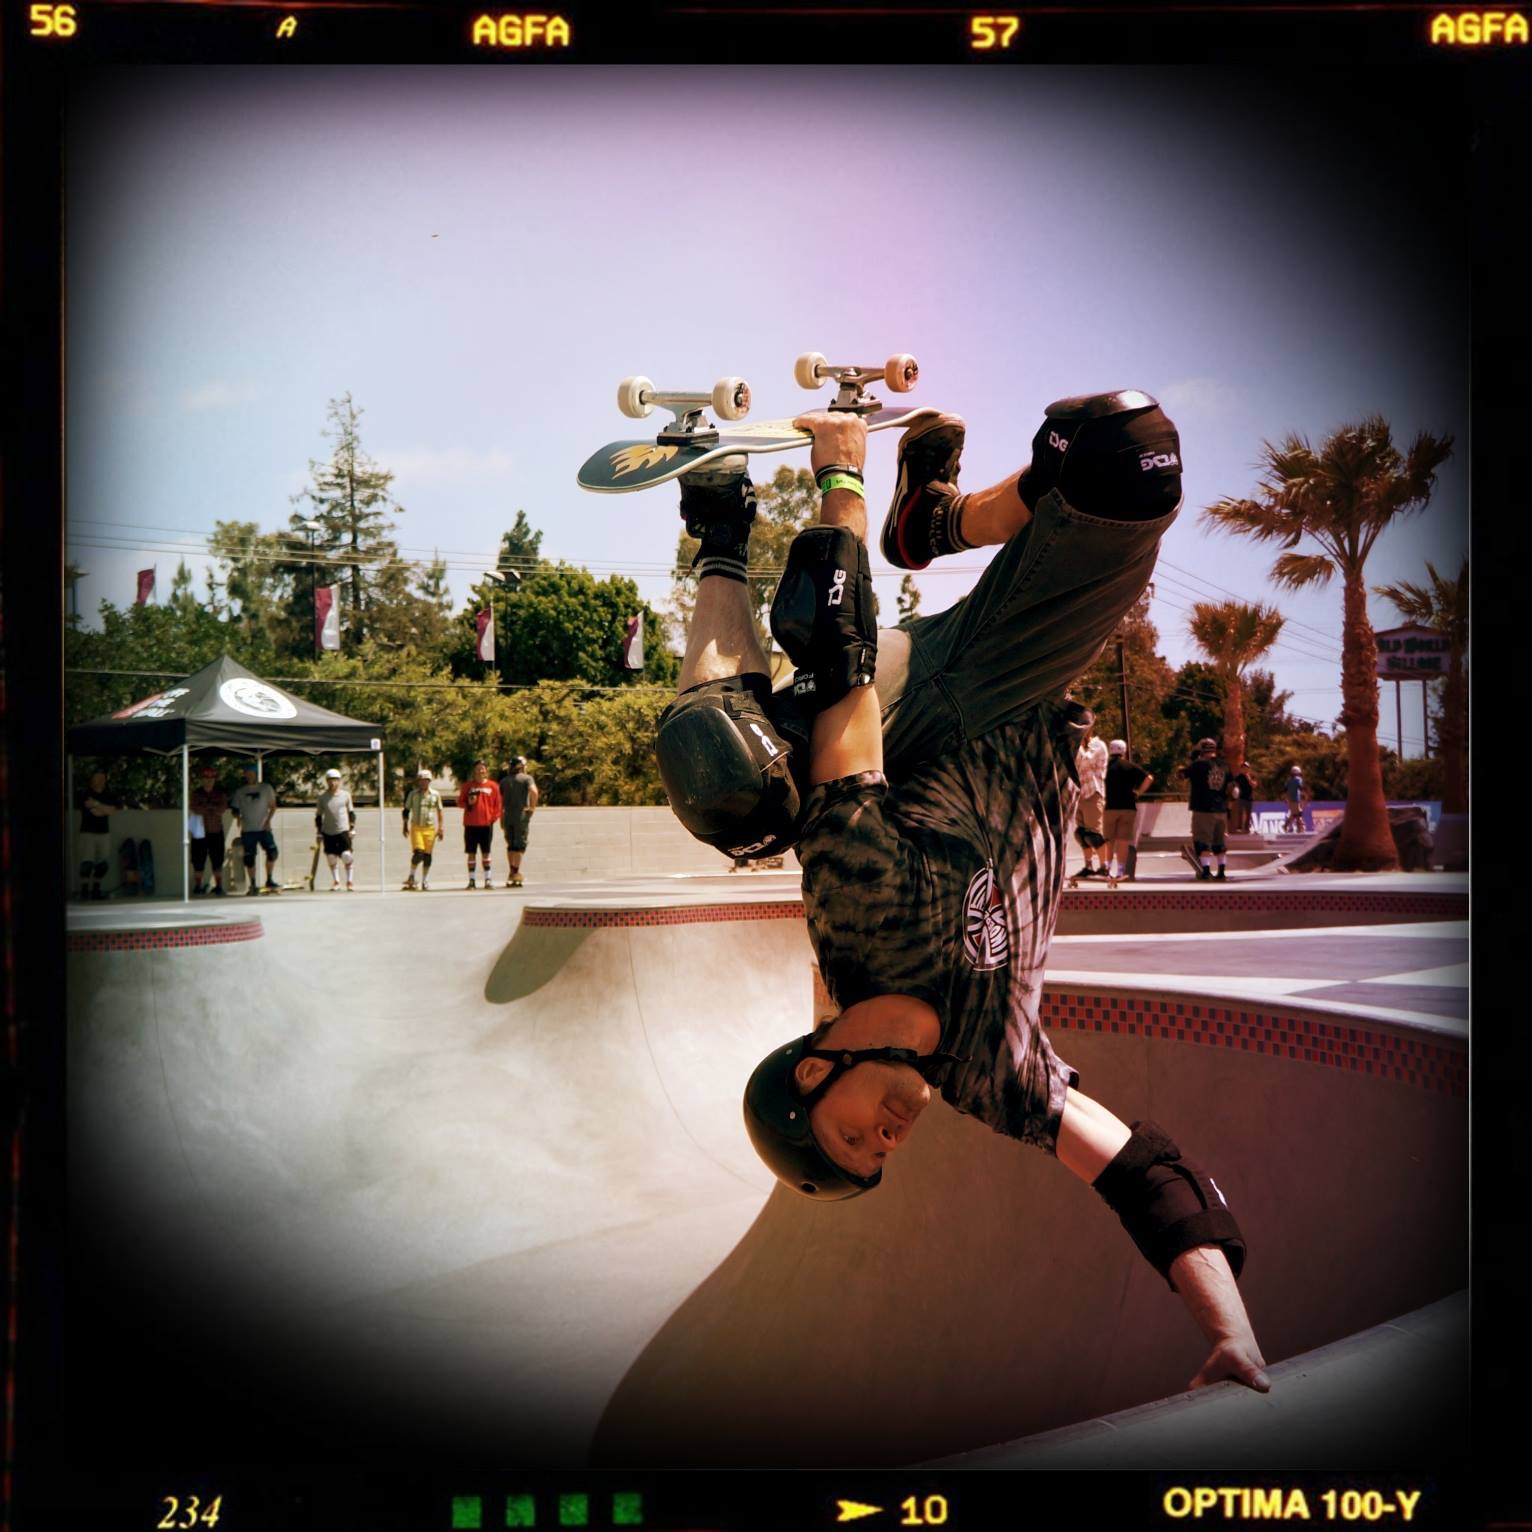 From the California trip 2014. First visit to Vans skatepark Huntington Beach! photo by Jonathan Park